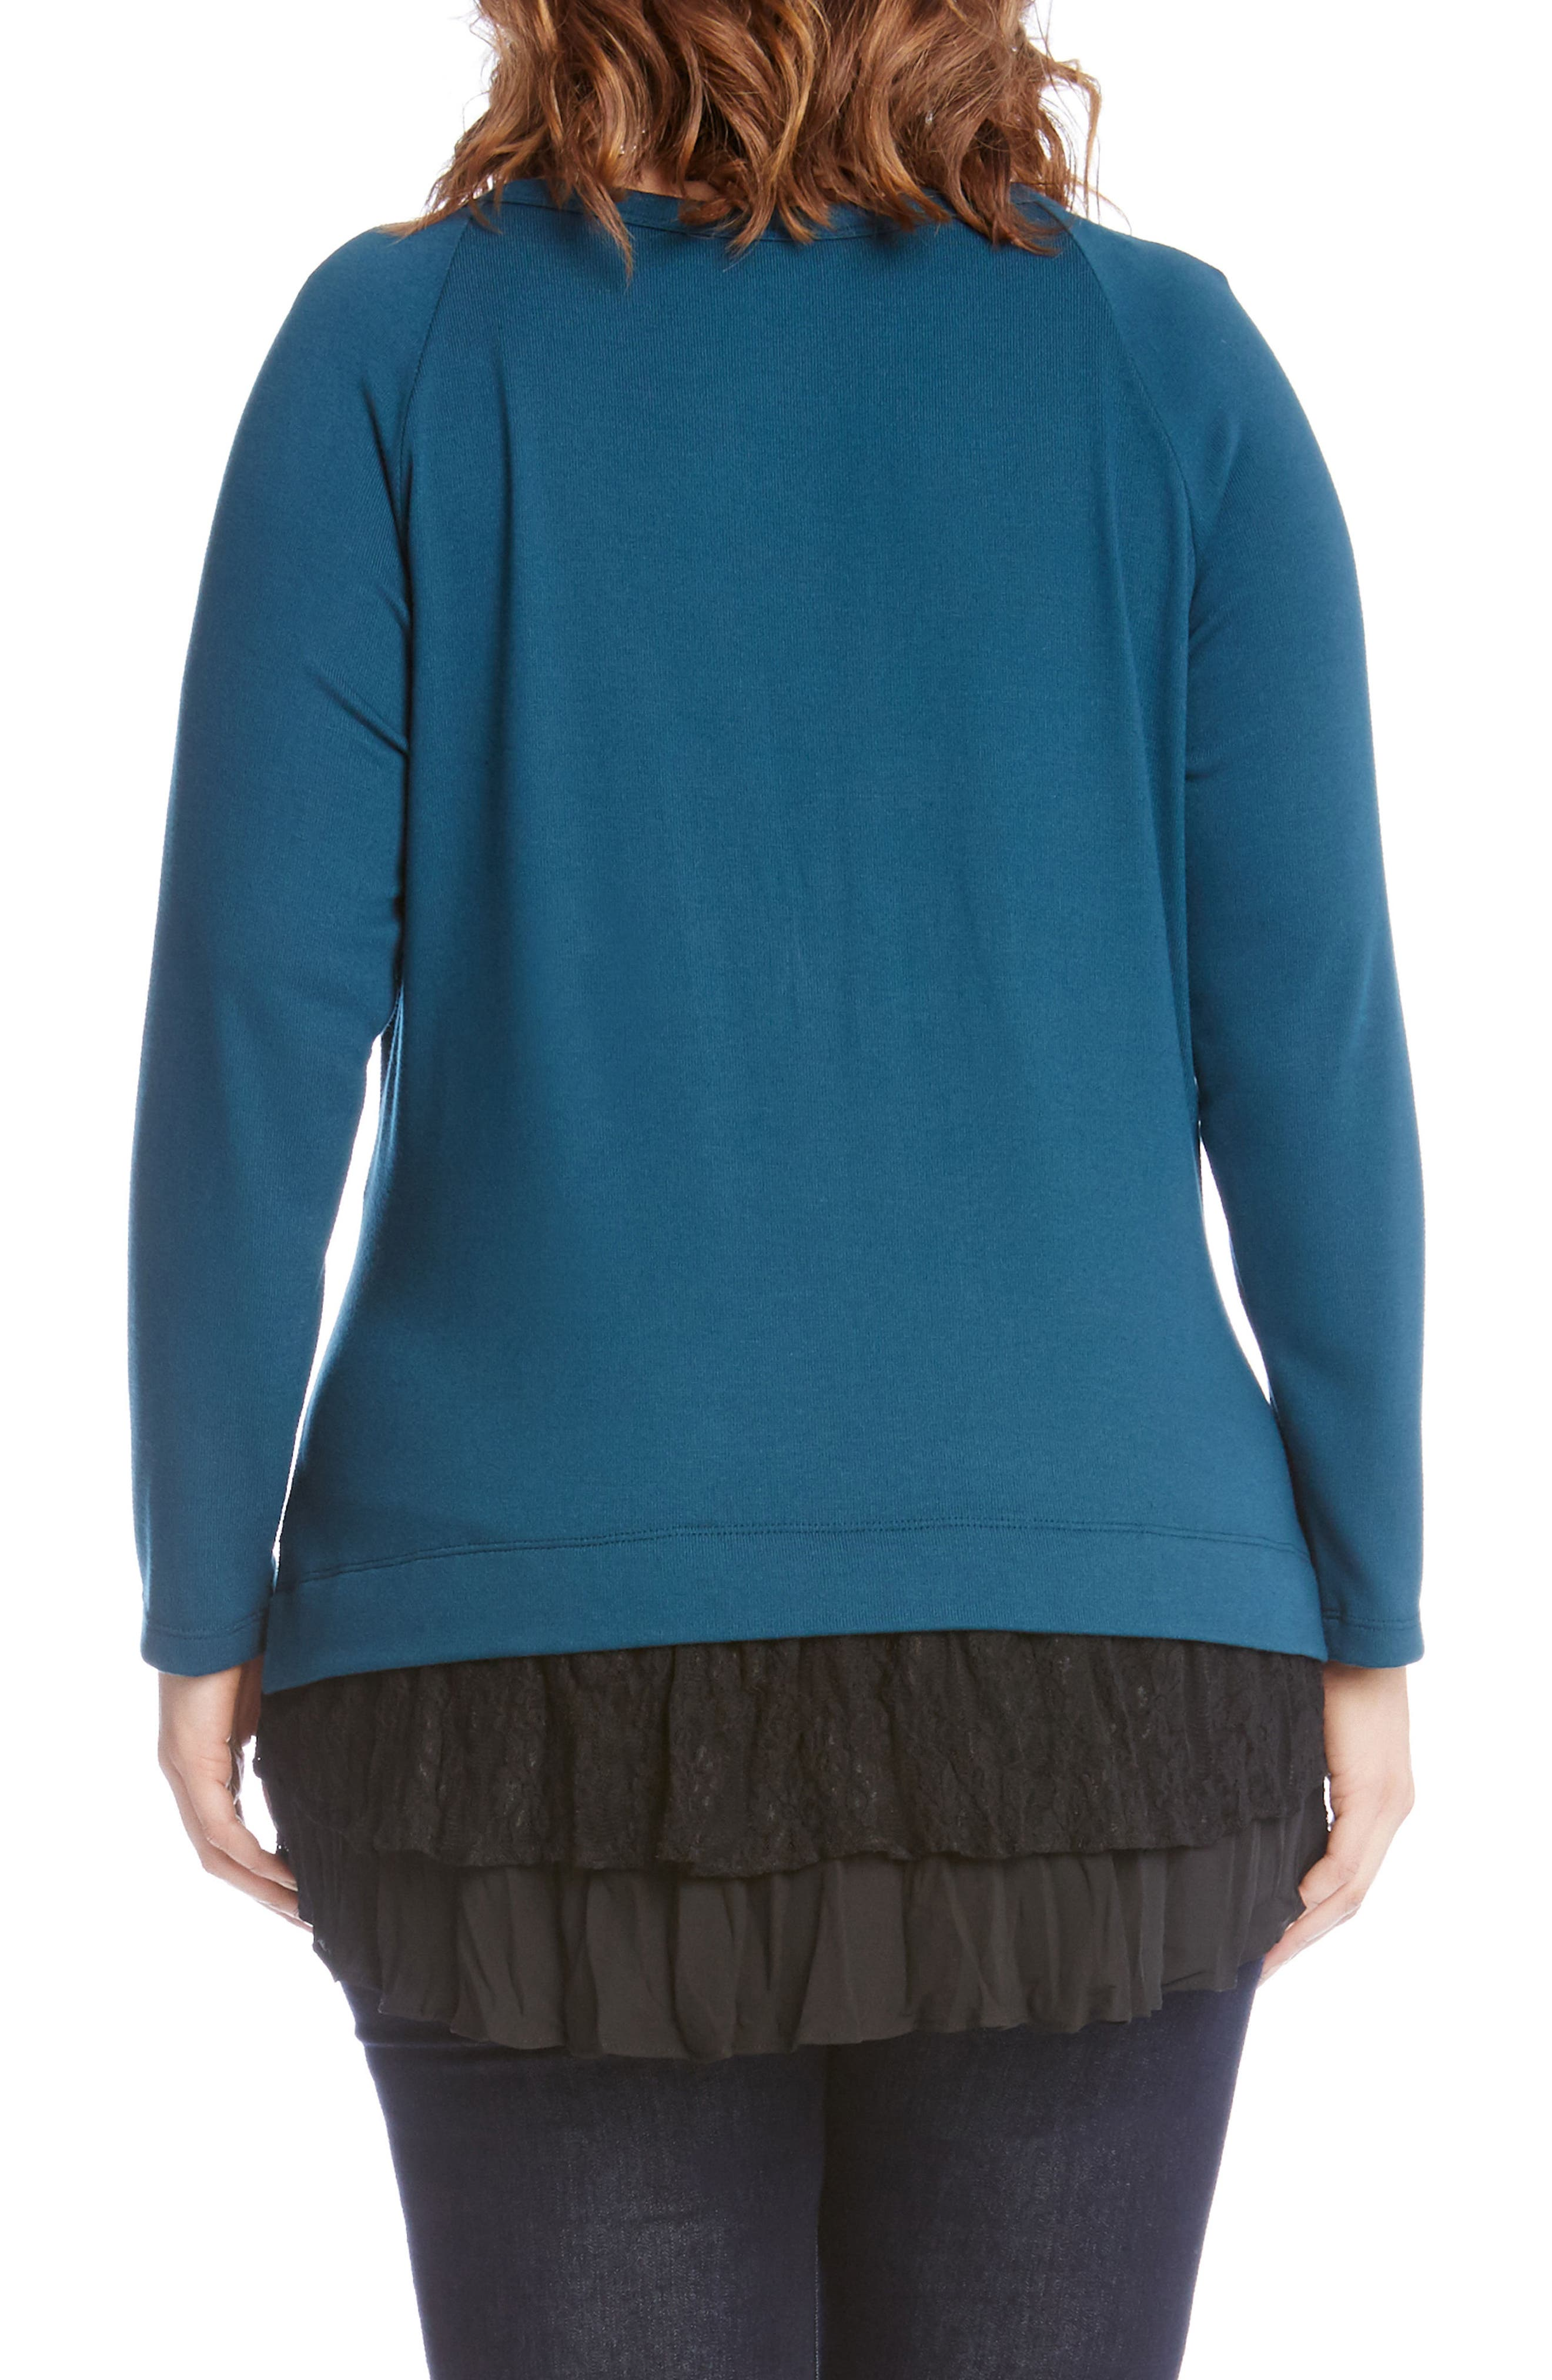 Lace Inset Sweater,                             Alternate thumbnail 2, color,                             340